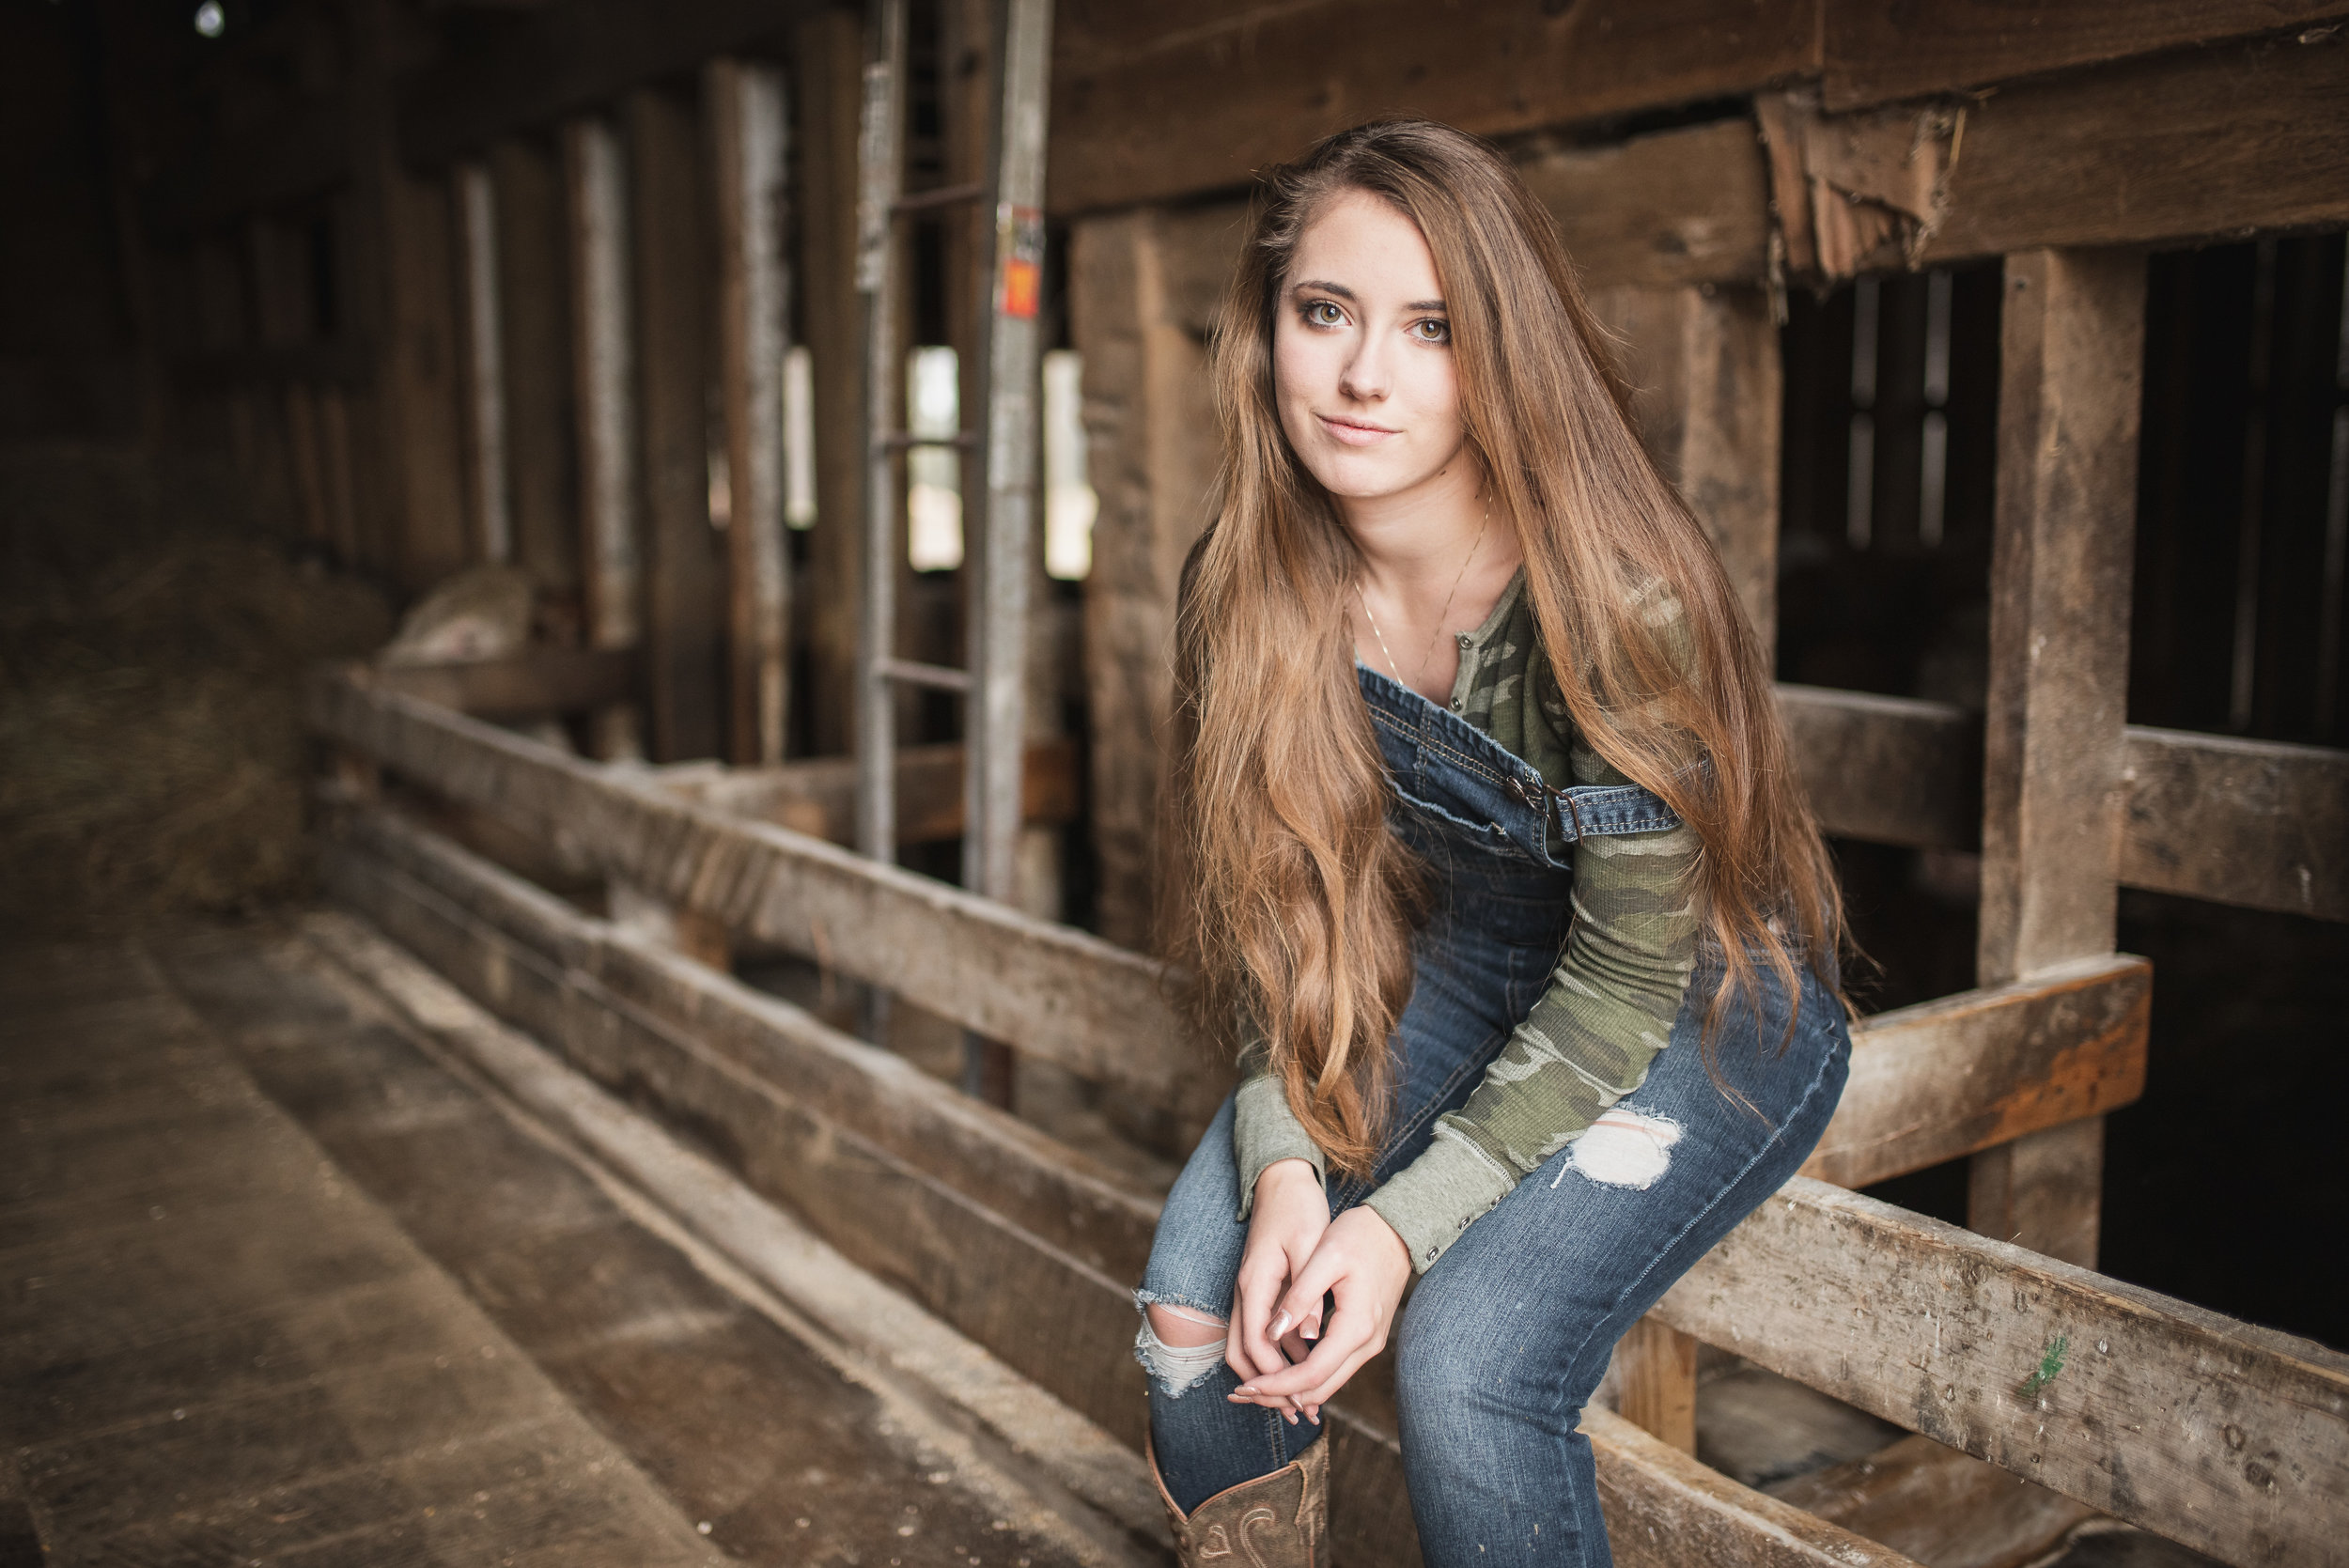 Sitting Portait of Country Girl With Long Hair